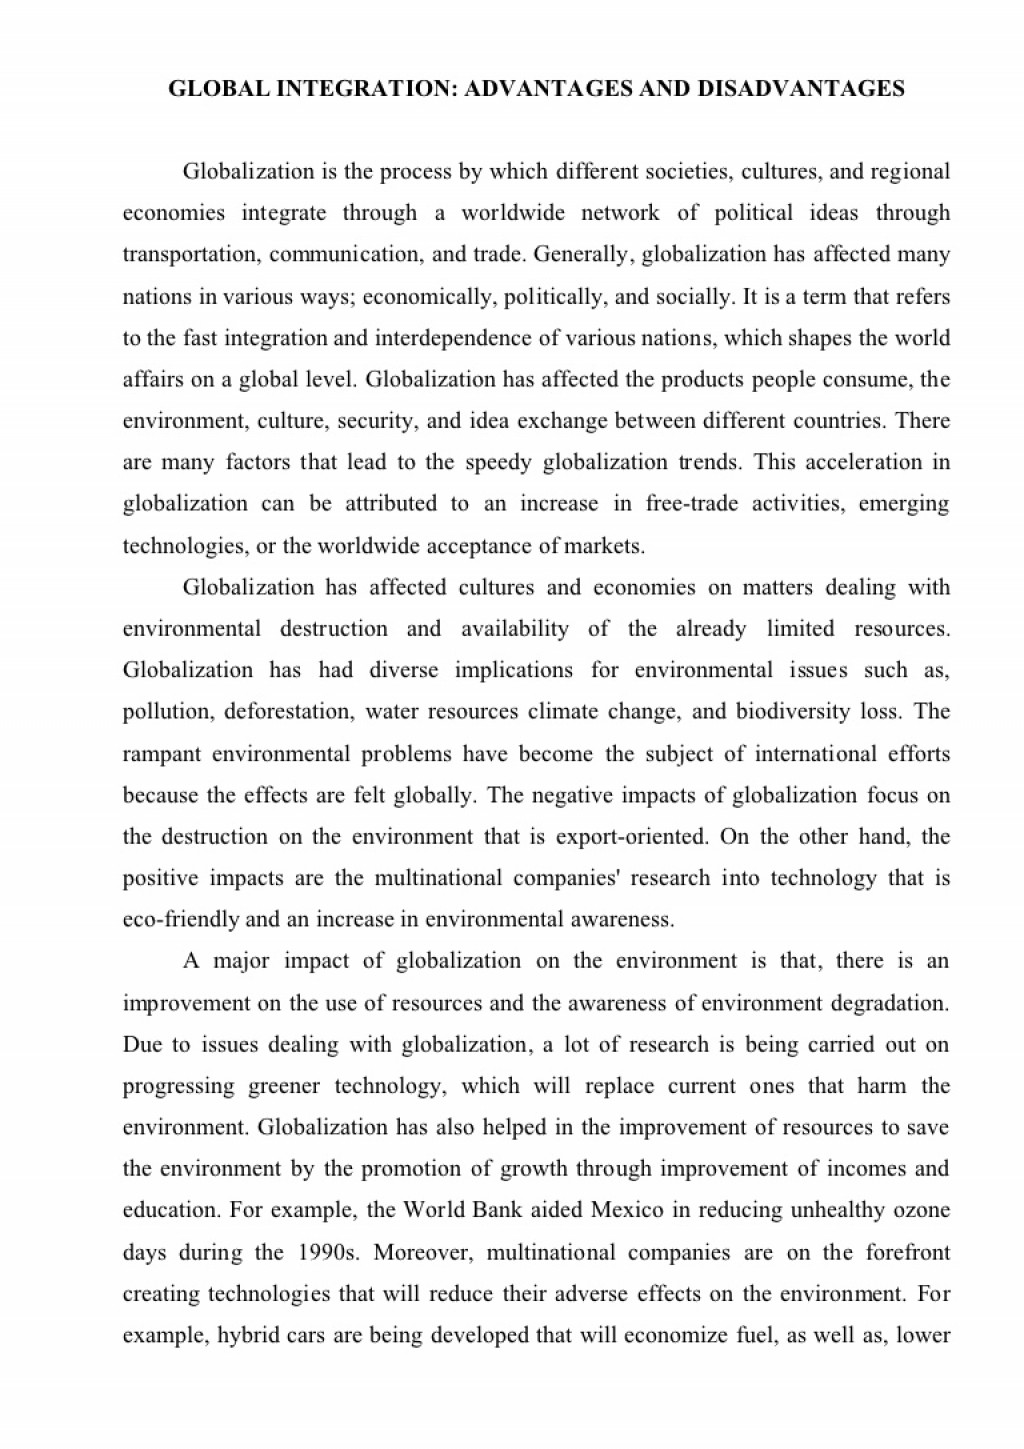 021 Essayglobalization Phpapp02 Thumbnail Essay Example Advantage And Disadvantage Of Shocking Science Advantages Disadvantages In Marathi Language With Quotes Large